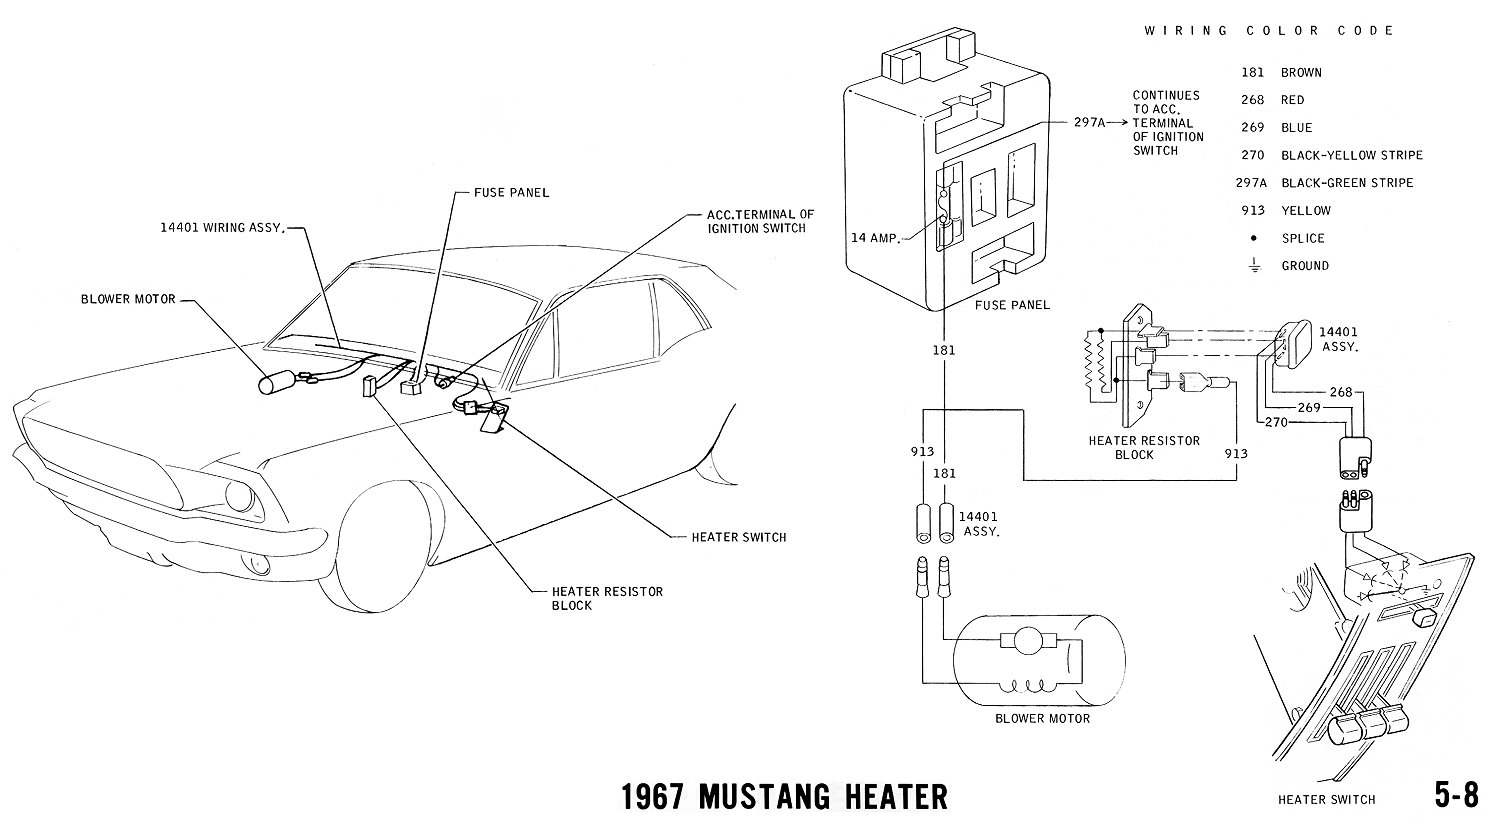 heater wiring diagram on a 1966 mustang wiring diagram u2022 rh msblog co 1968 Ford Mustang Wiring Diagram 1969 Mustang Wiring Diagram PDF